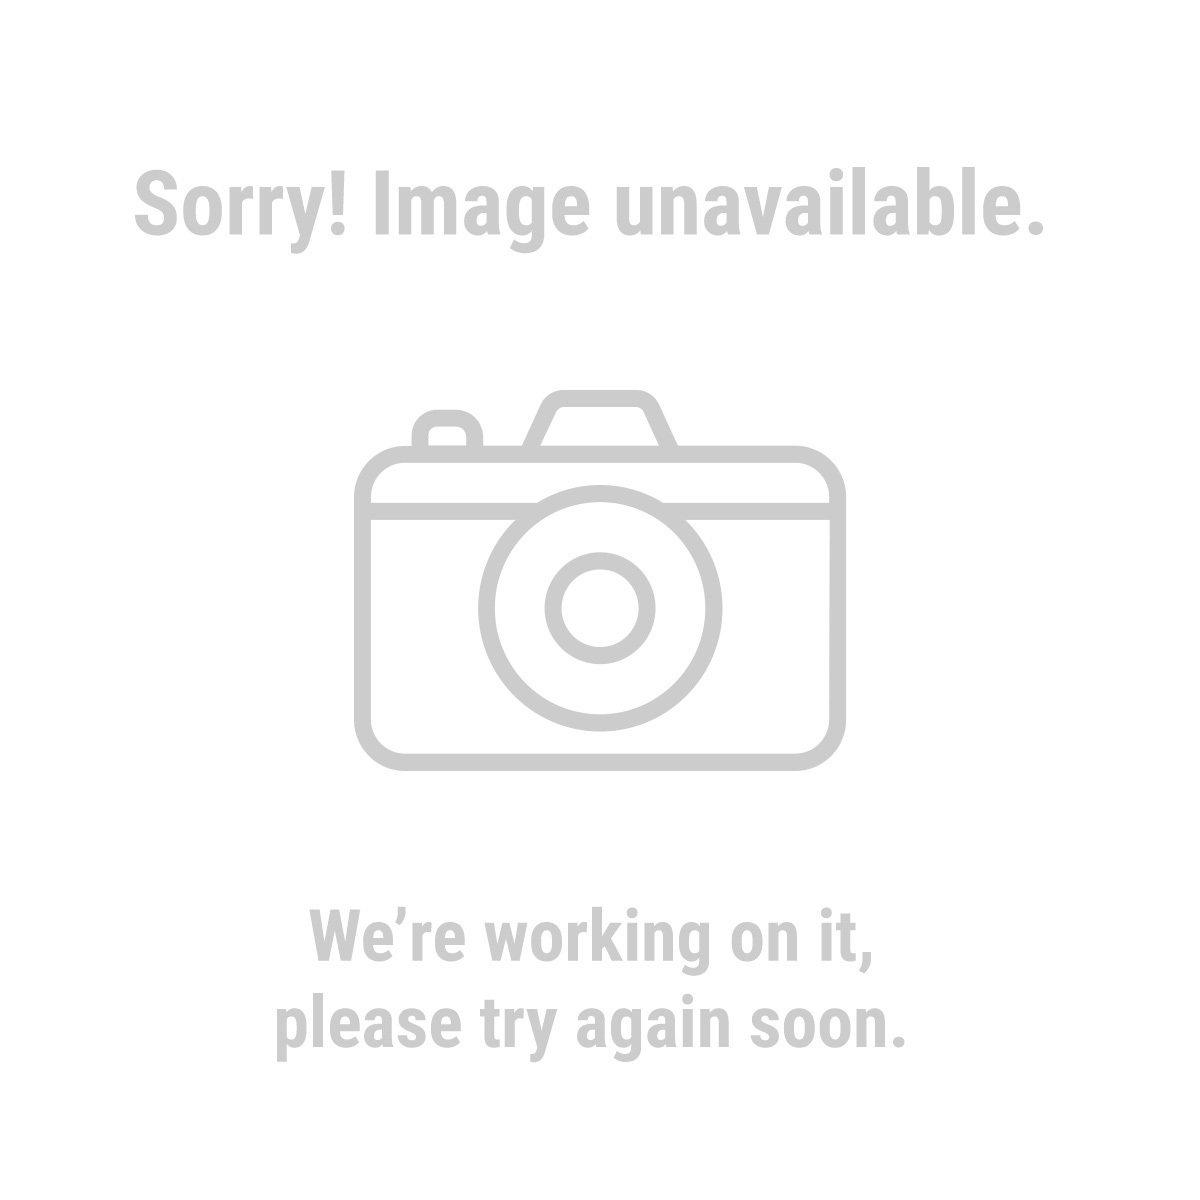 HFT 41446 25 Ft. x 14 Gauge Outdoor Extension Cord